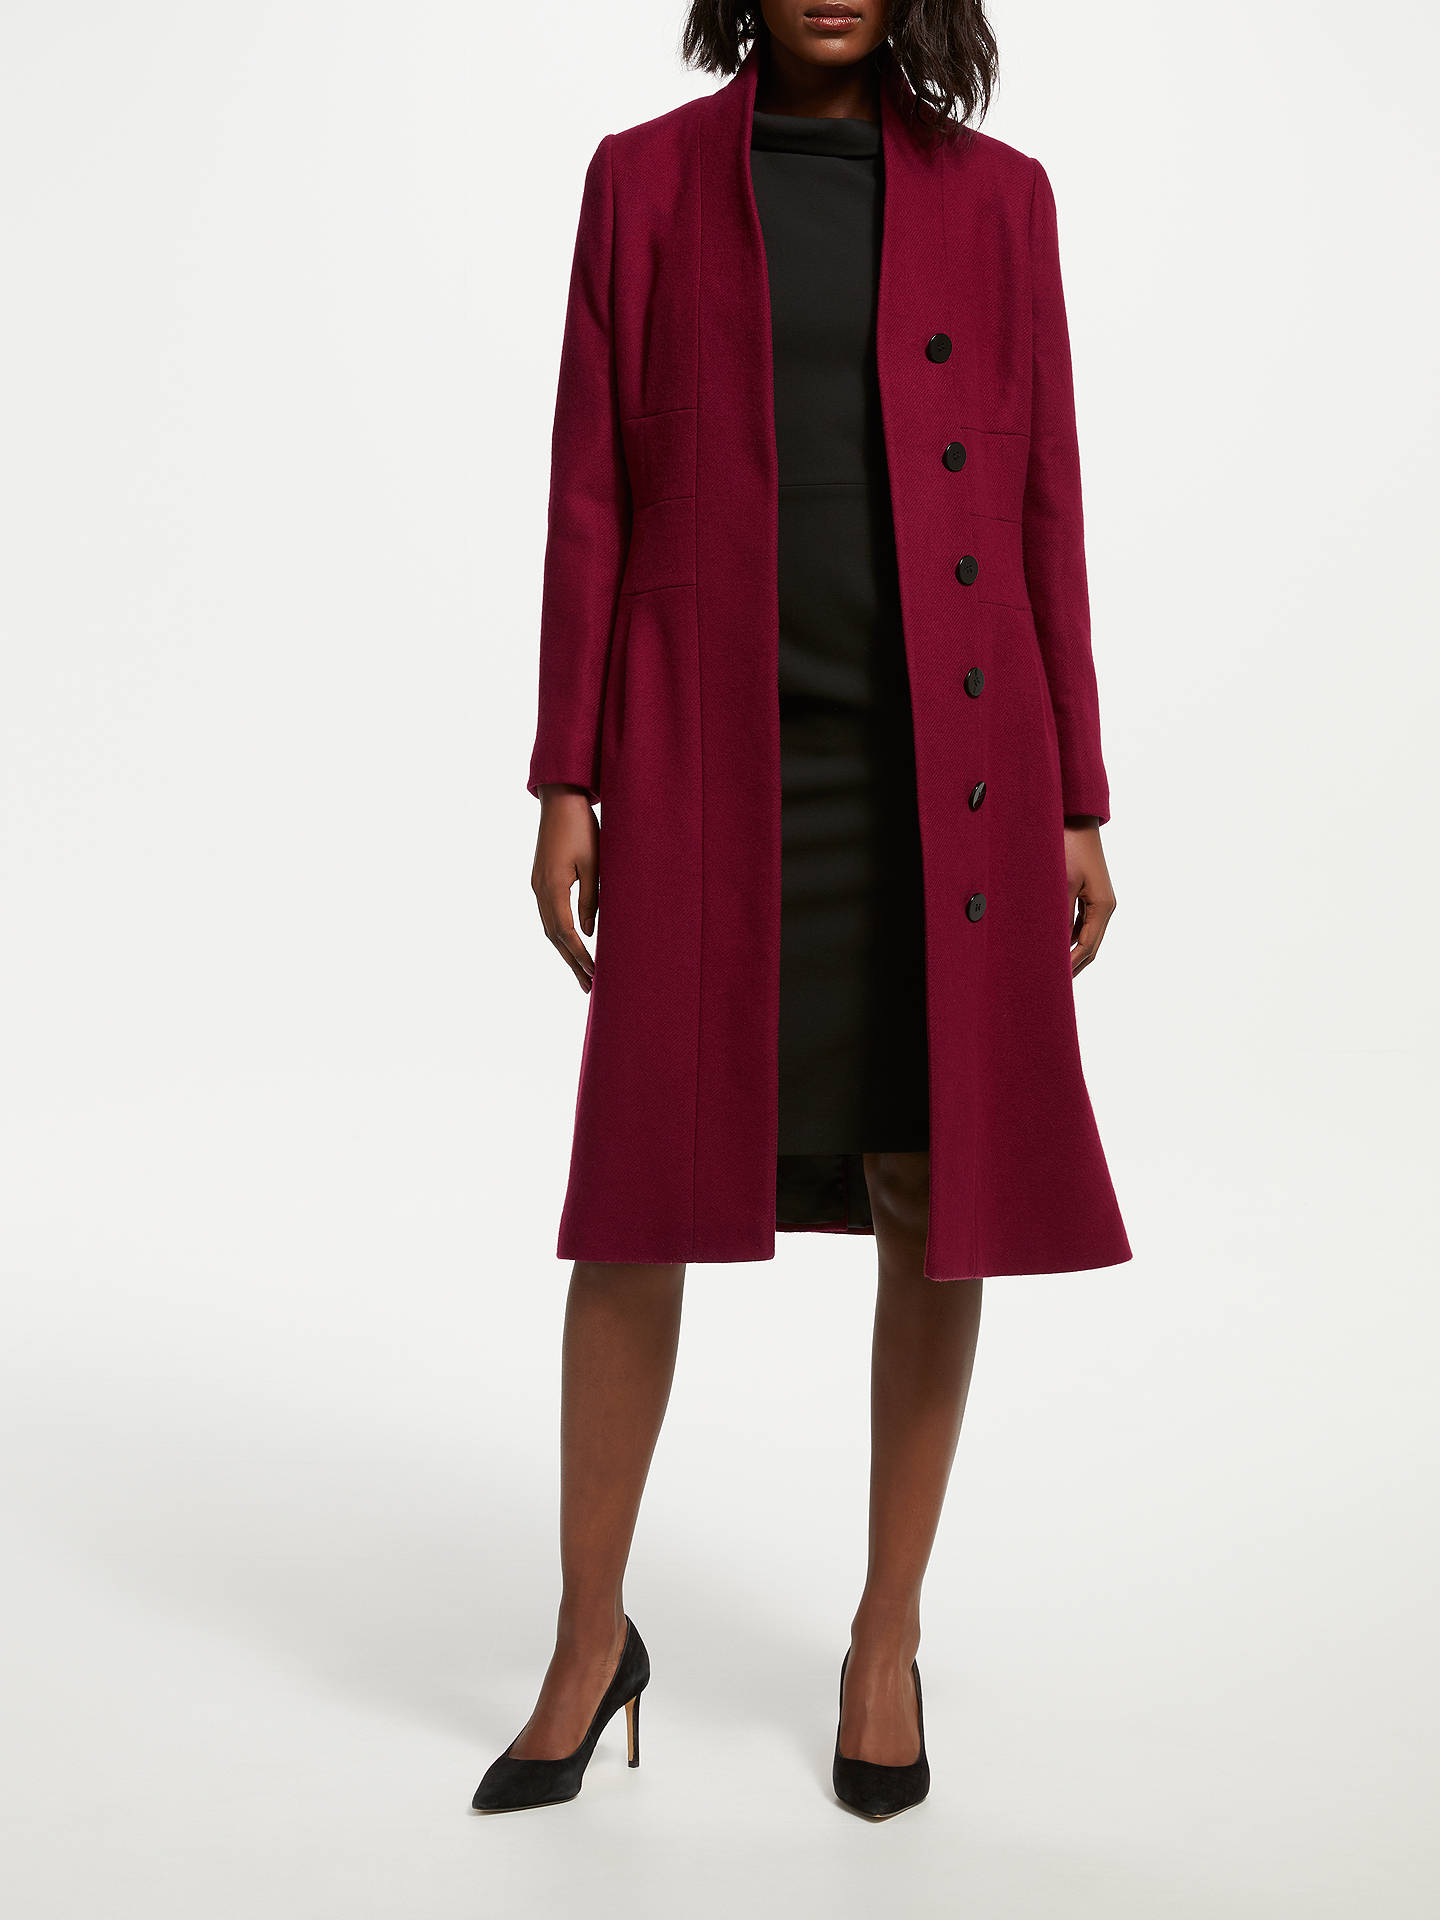 BuyBruce by Bruce Oldfield Funnel Coat, Red, 8 Online at johnlewis.com